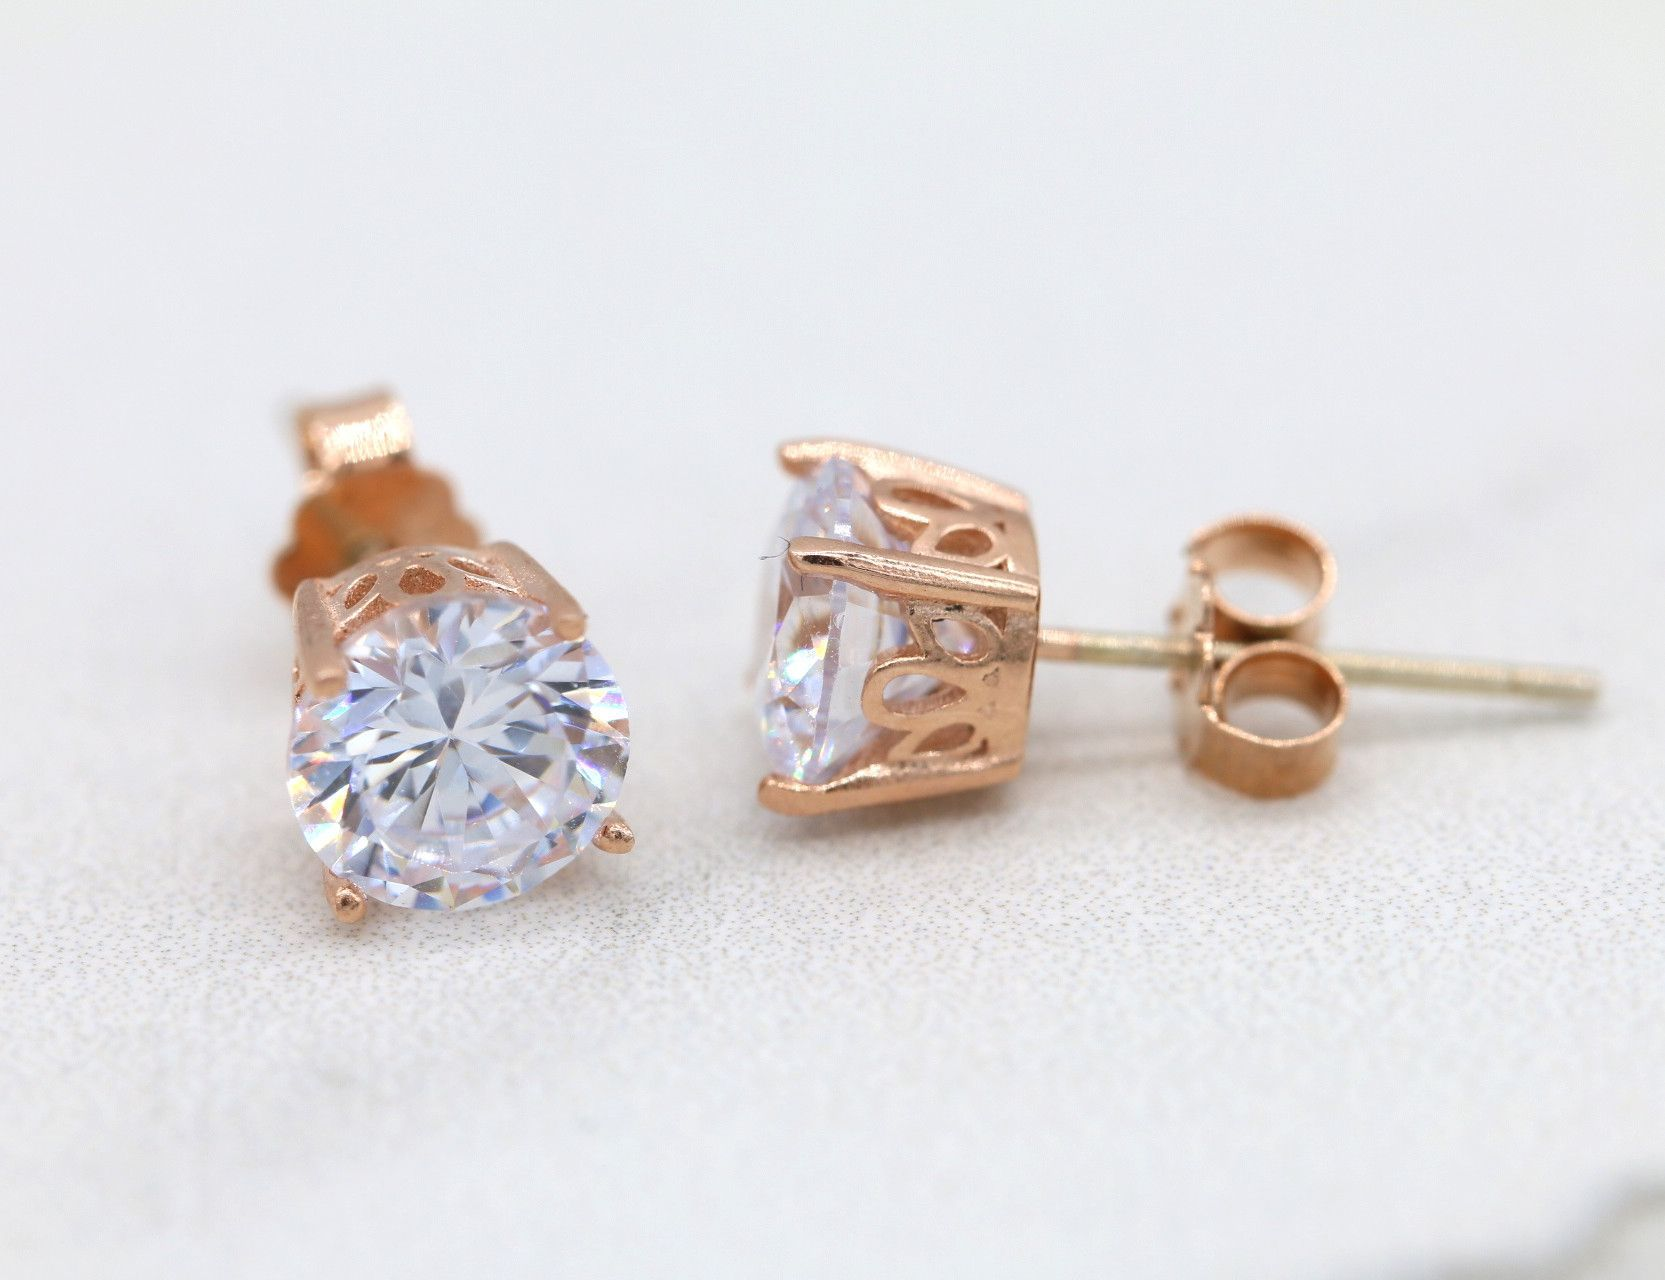 Rose Gold Stud Earrings Sterling Silver Stud Earrings